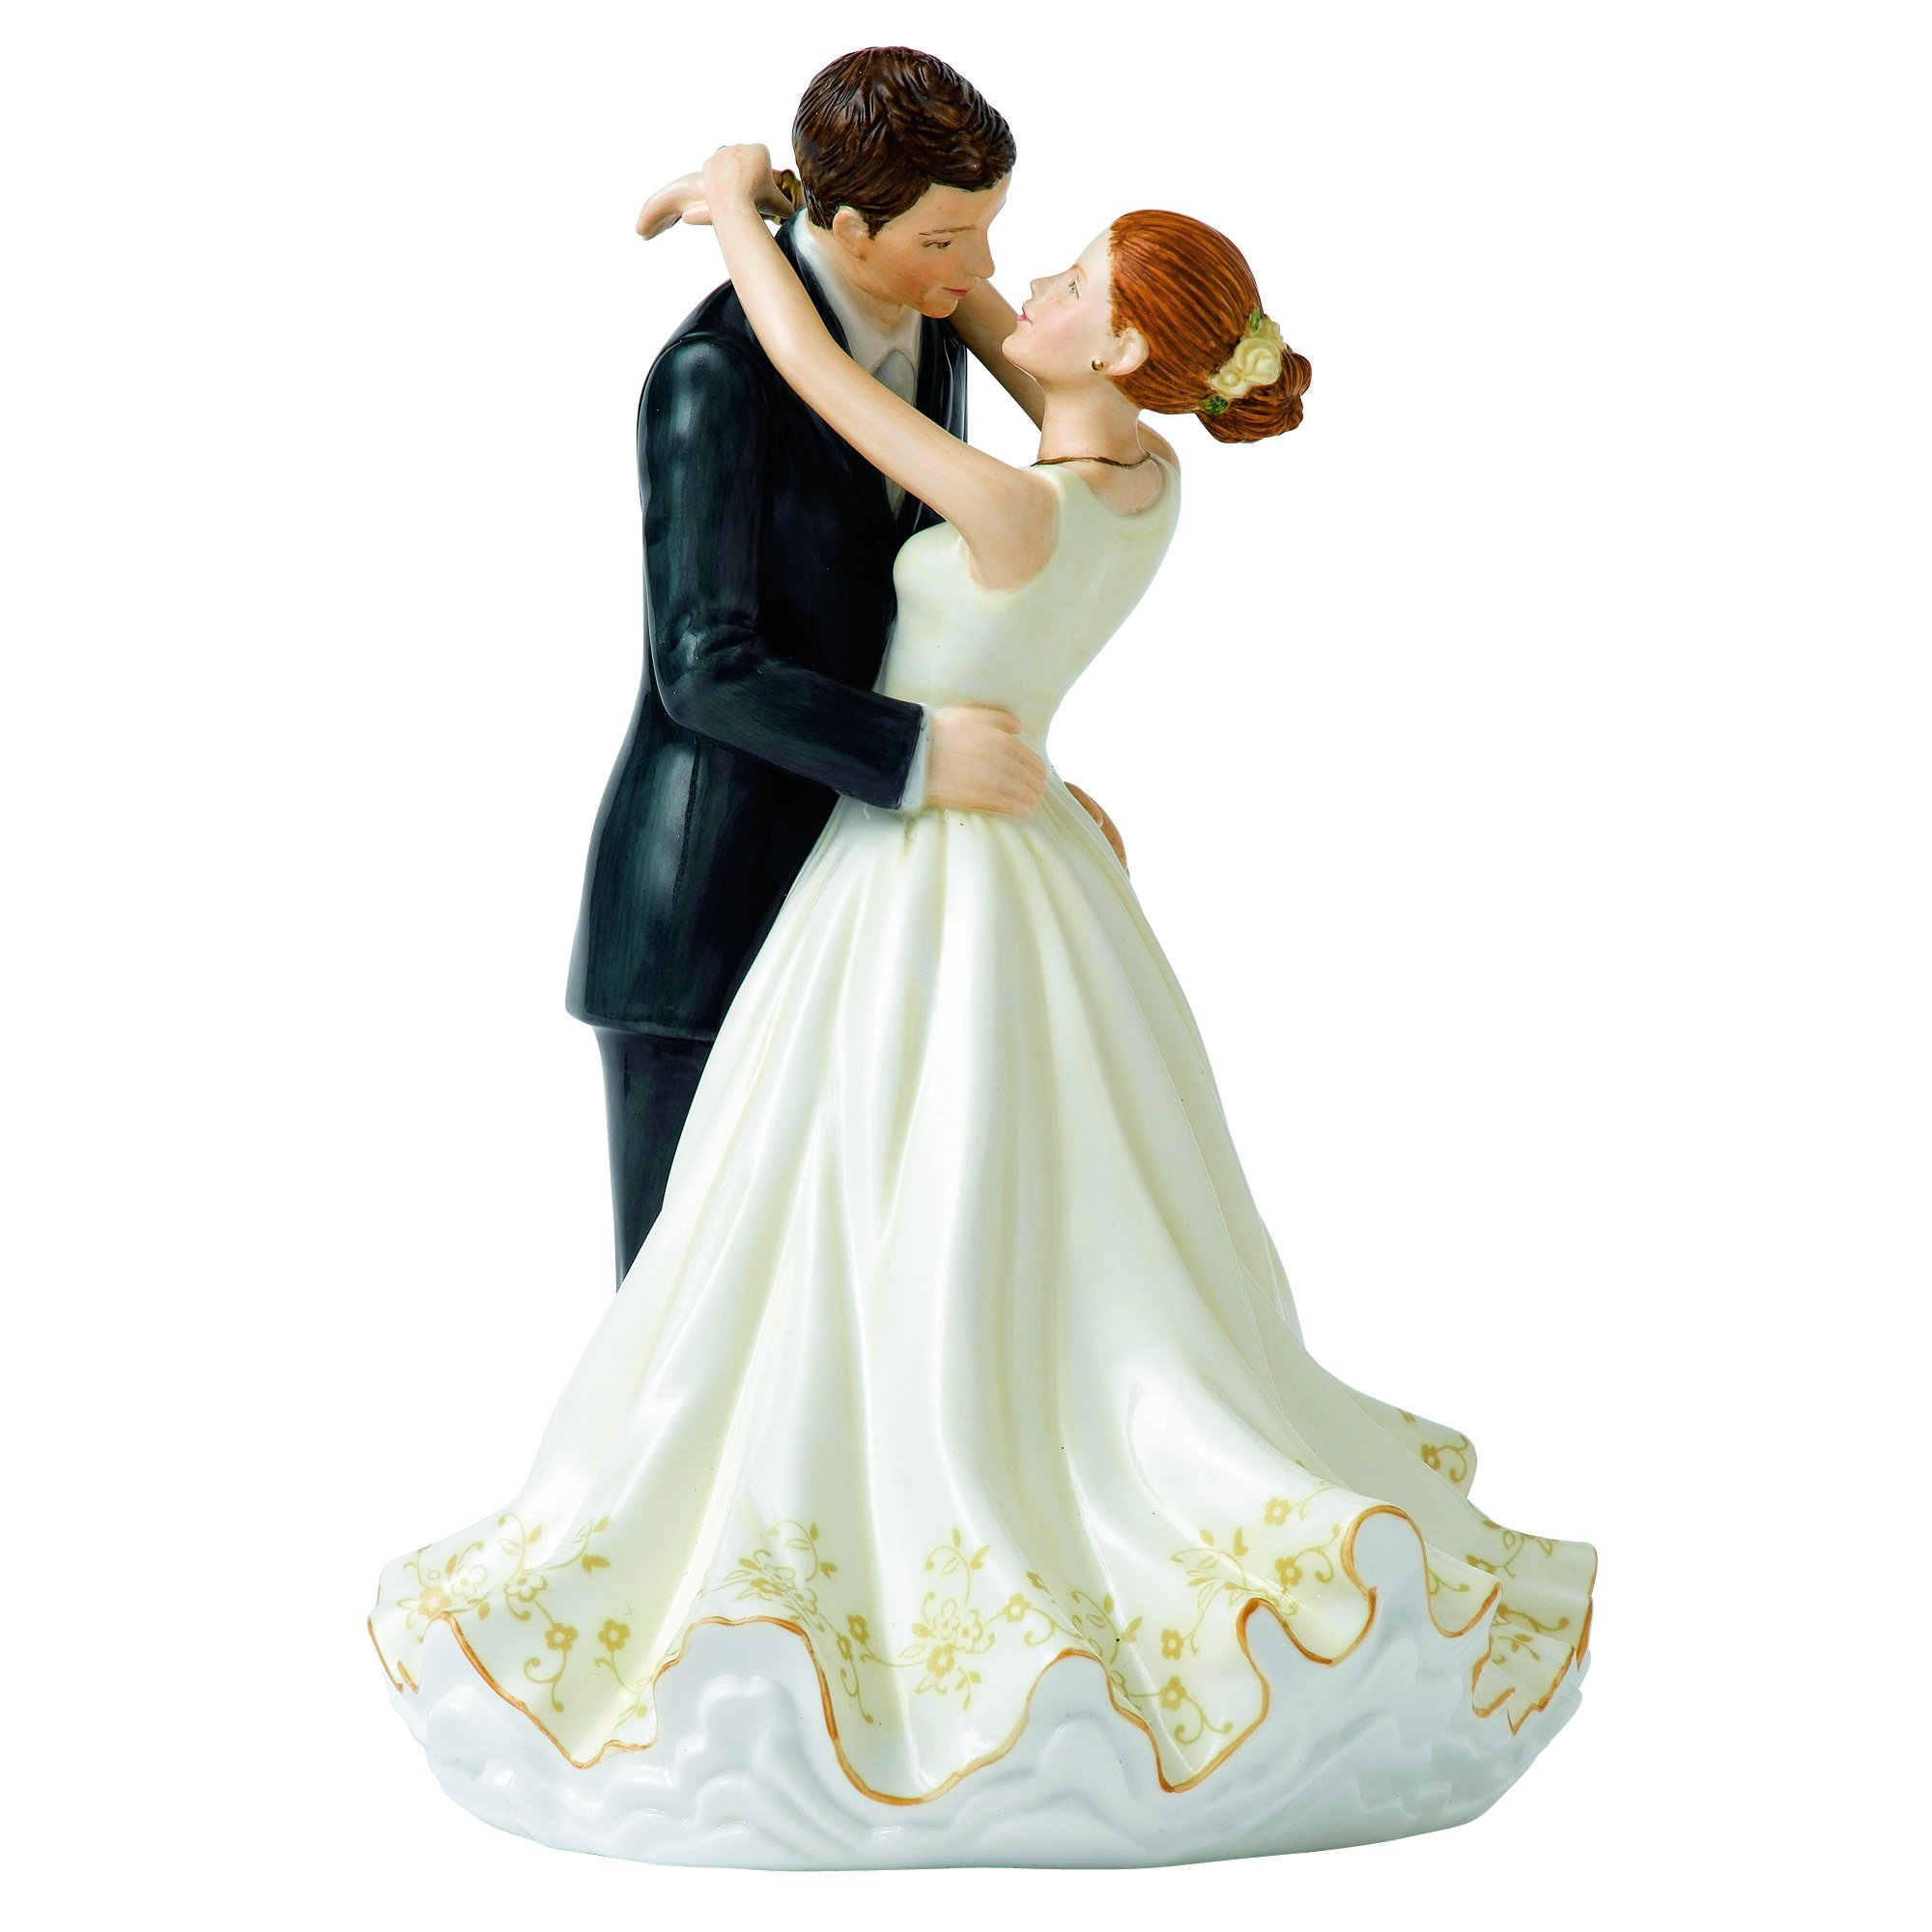 Royal Doulton Occasions Forever Cake Topper Figurine, 9.25''